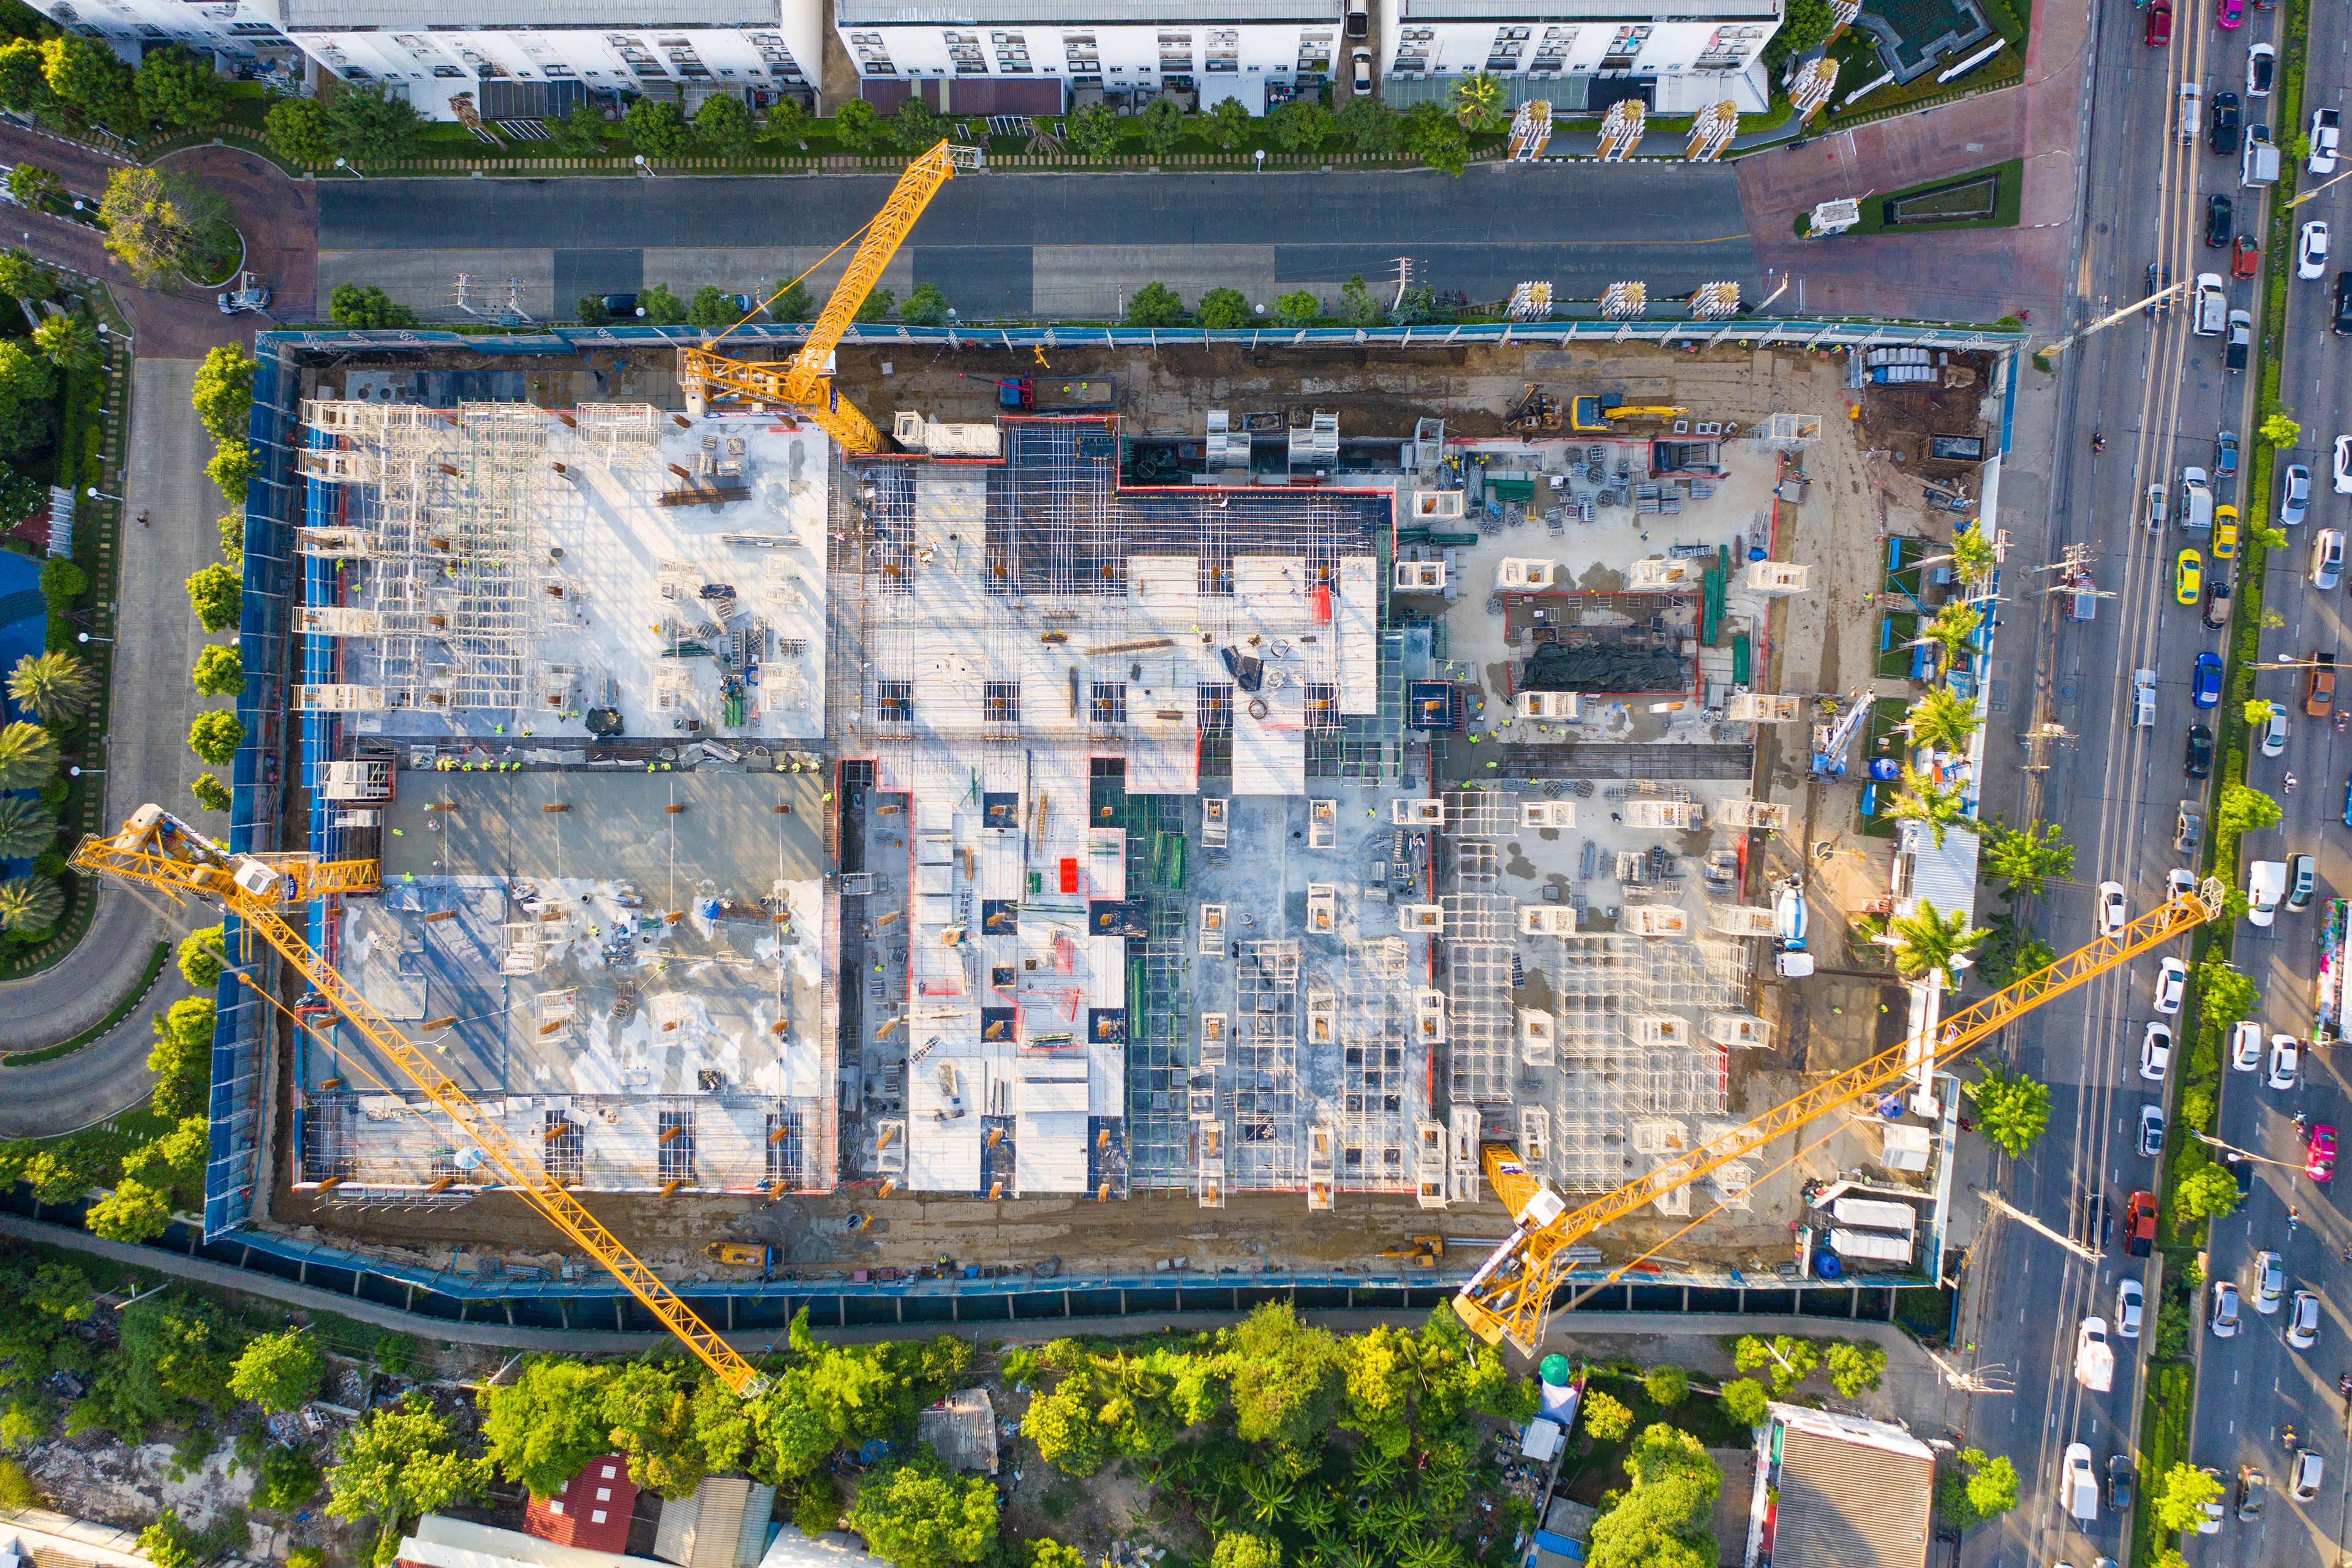 Top view of construction site